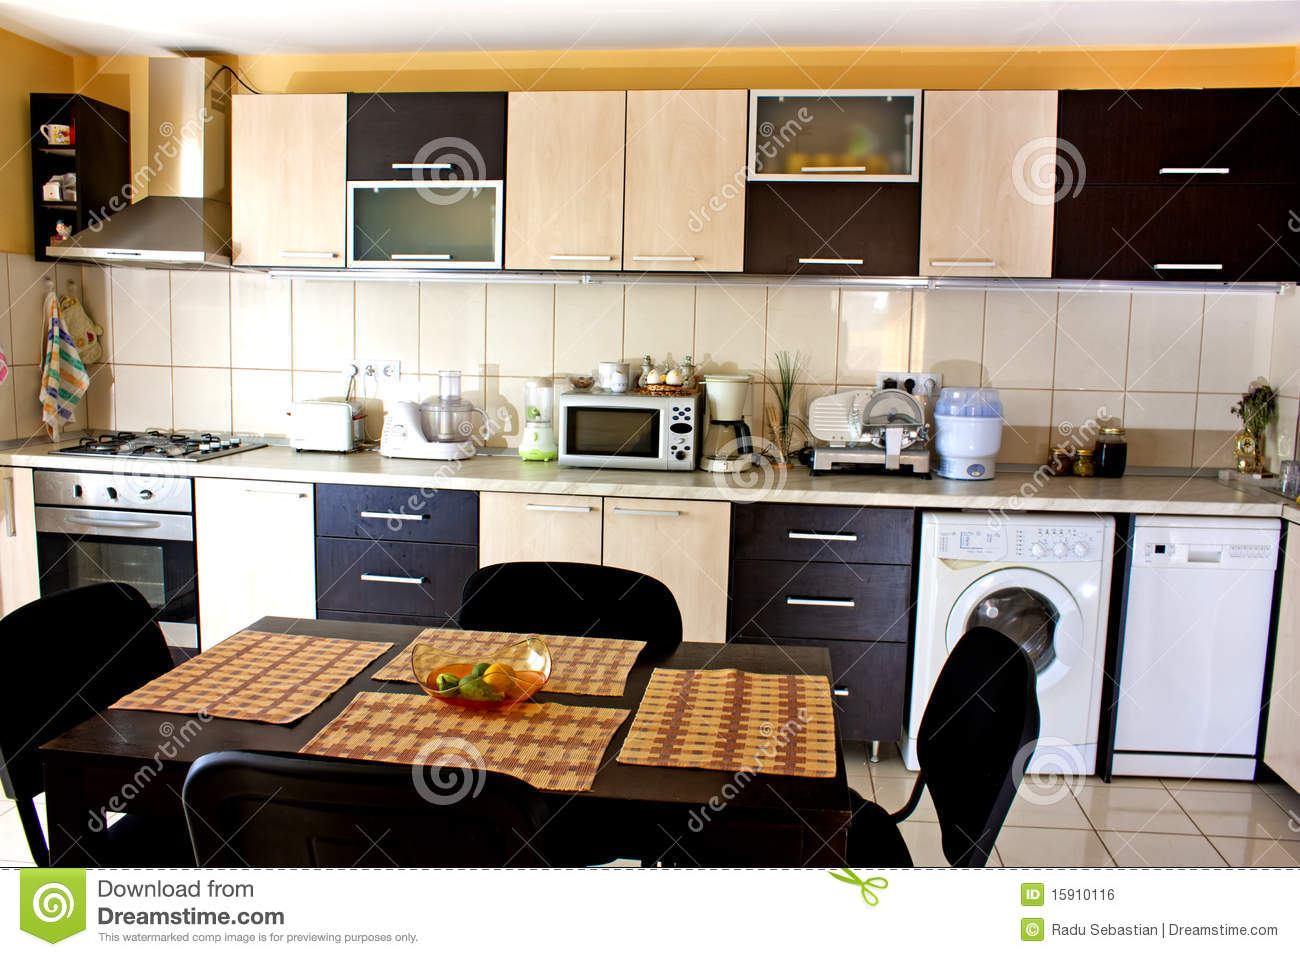 Modern Appliances In The Kitchen Stock Photo - Image of microwave ...